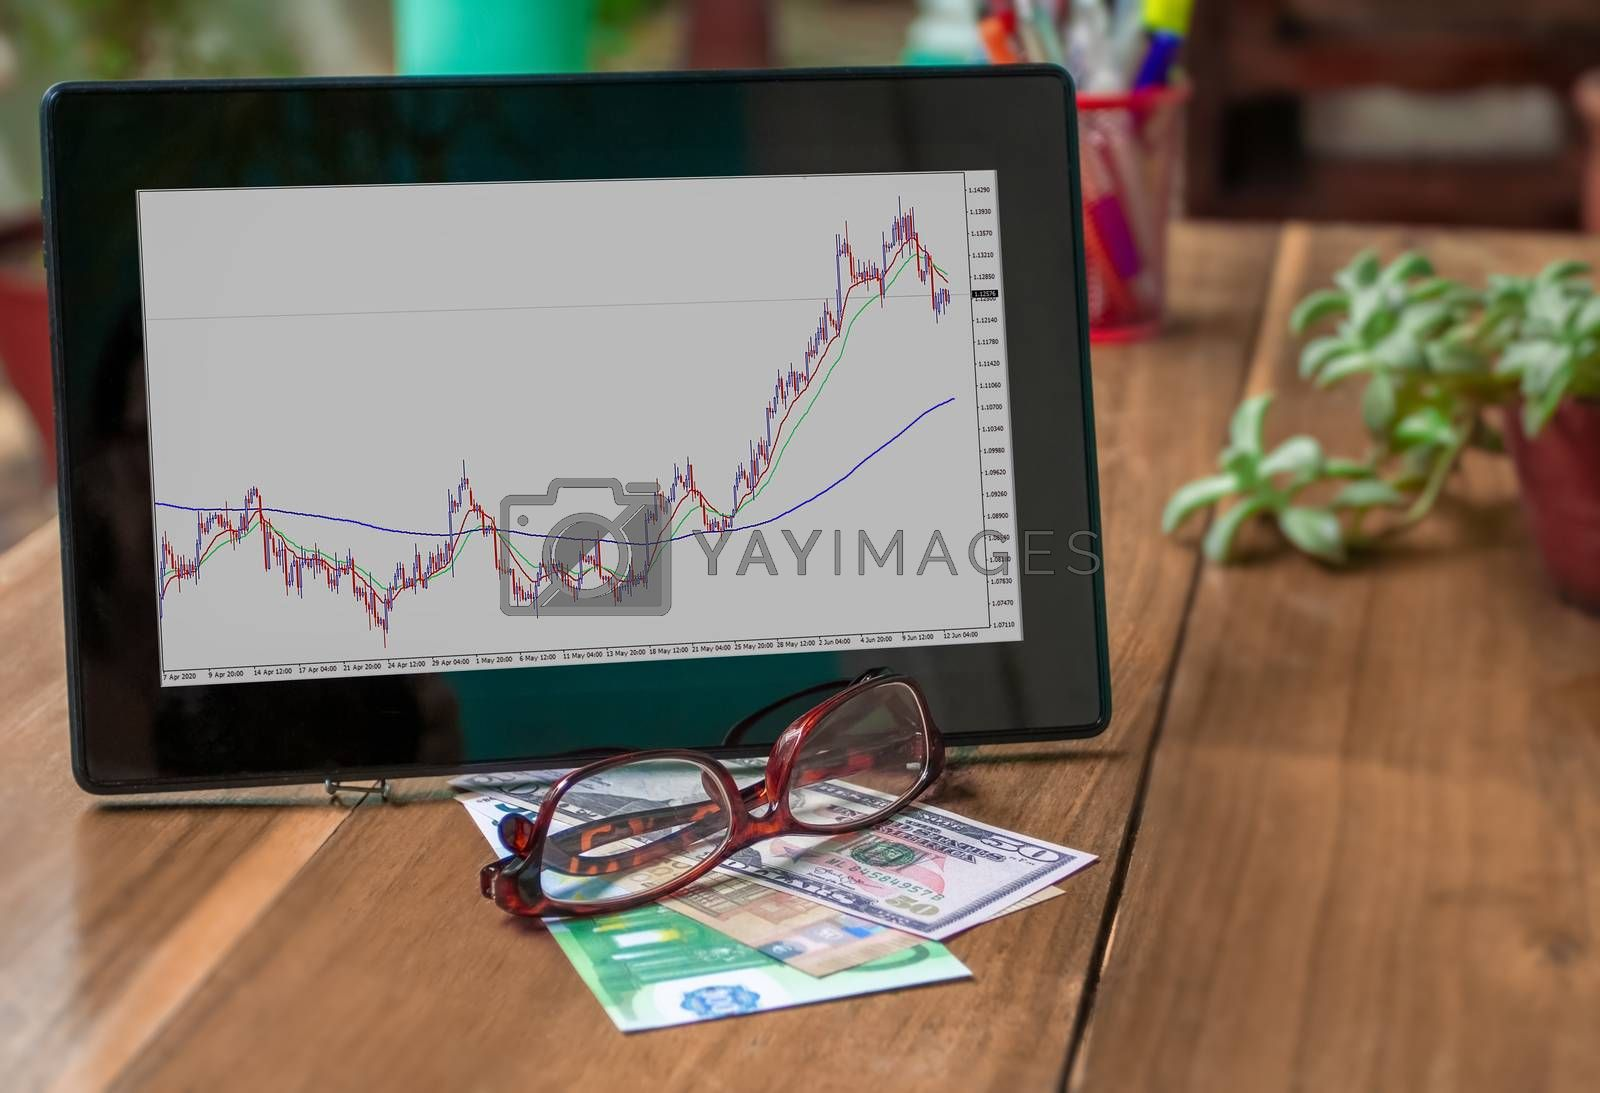 A tablet with a Japanese candle chart on its screen on a table, along with some bills, and a pair of glasses.